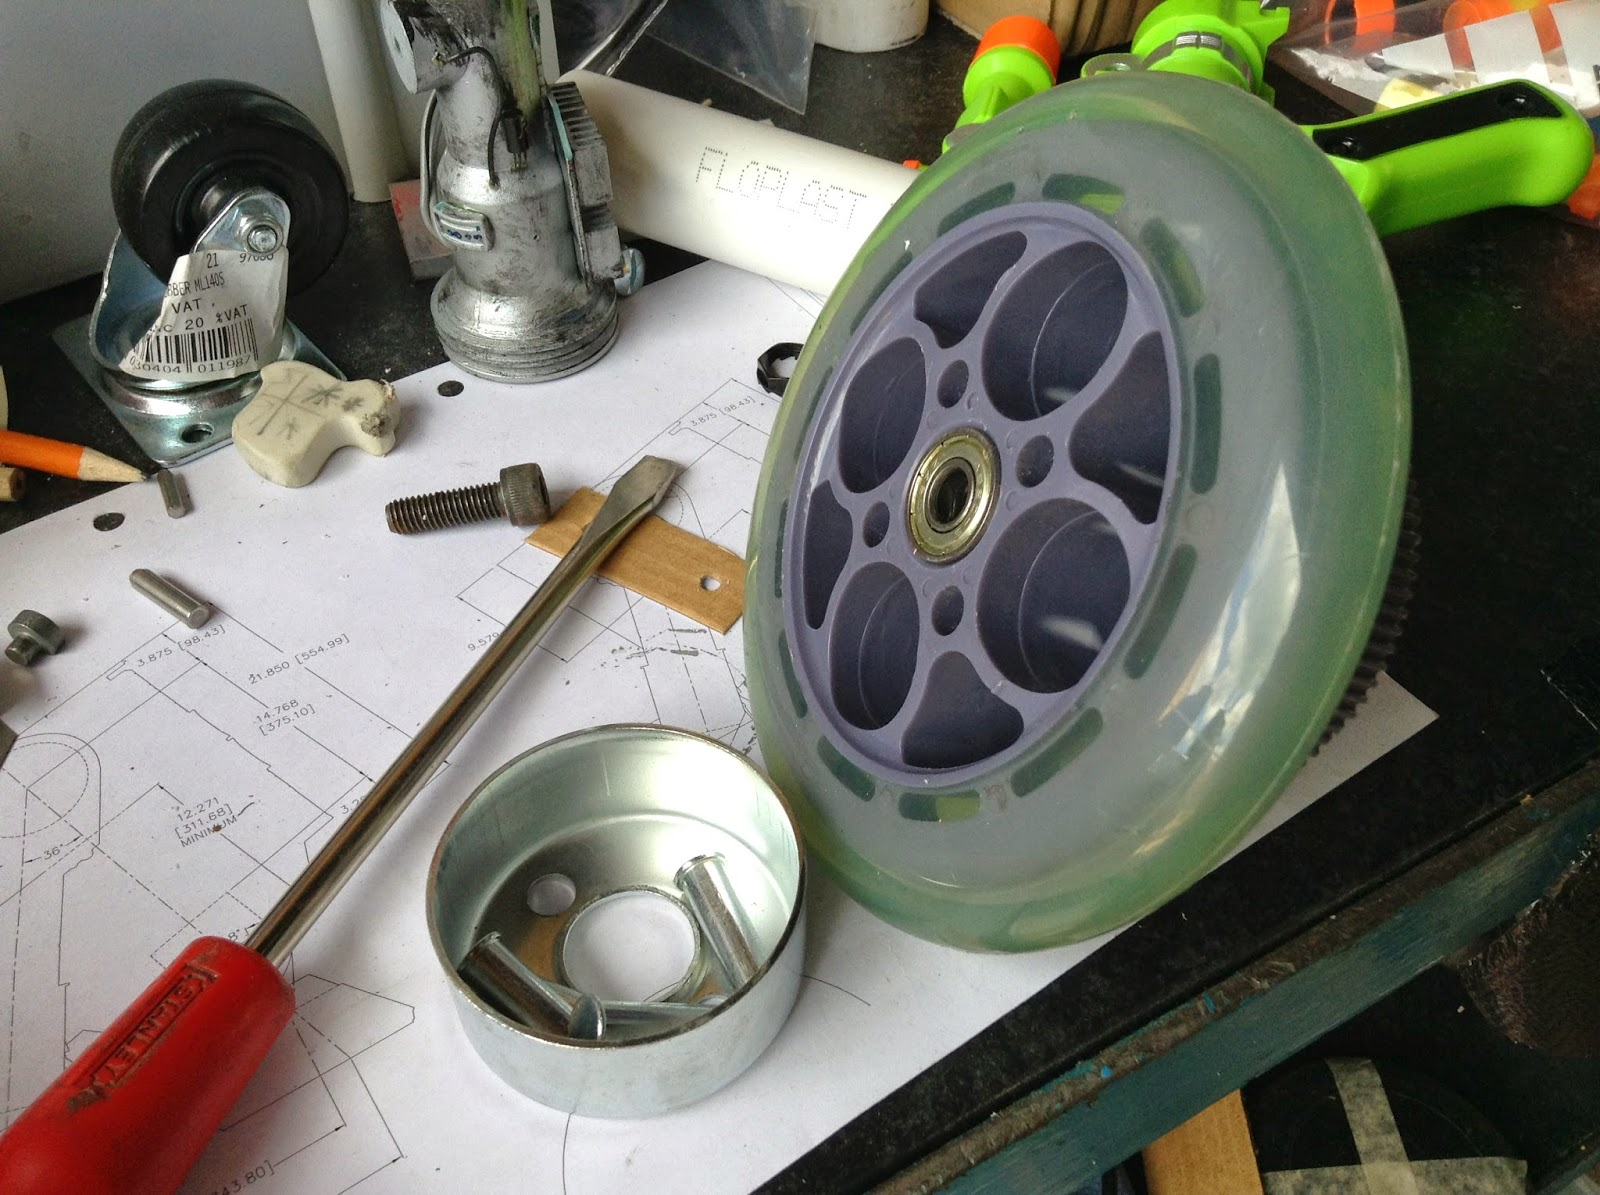 R5-D4's Outer foot wheel to motor upgrade